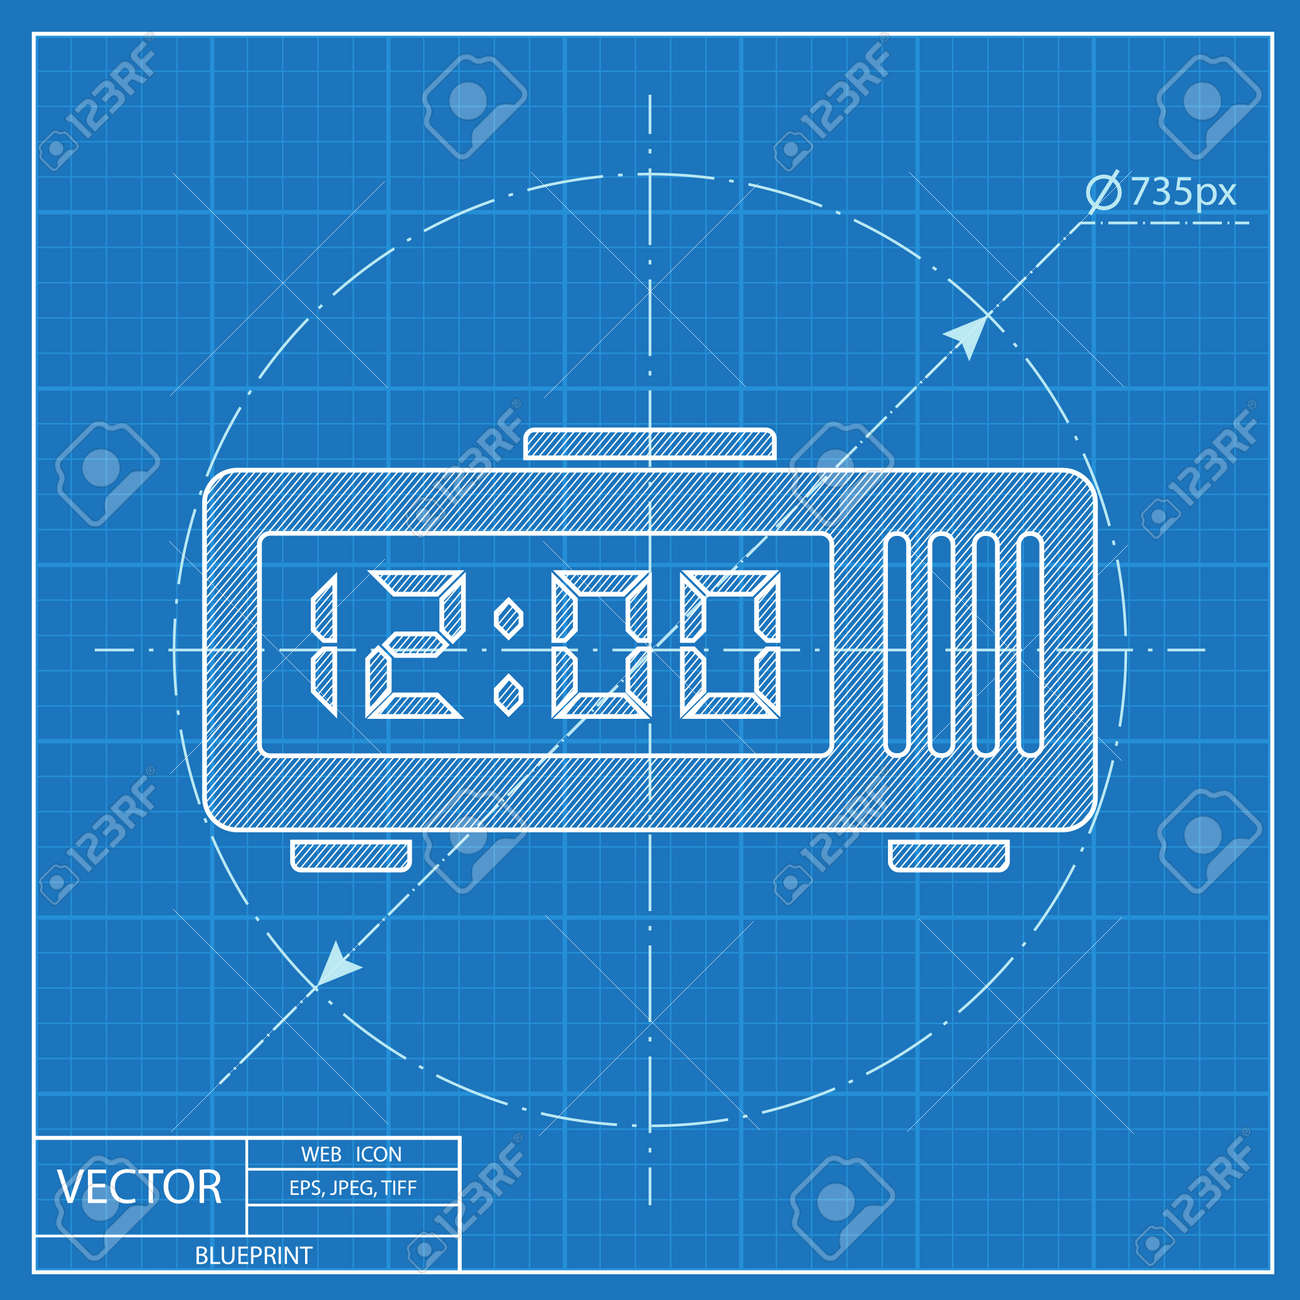 Alarm clock icon blueprint style royalty free cliparts vectors alarm clock icon blueprint style stock vector 55573670 malvernweather Image collections